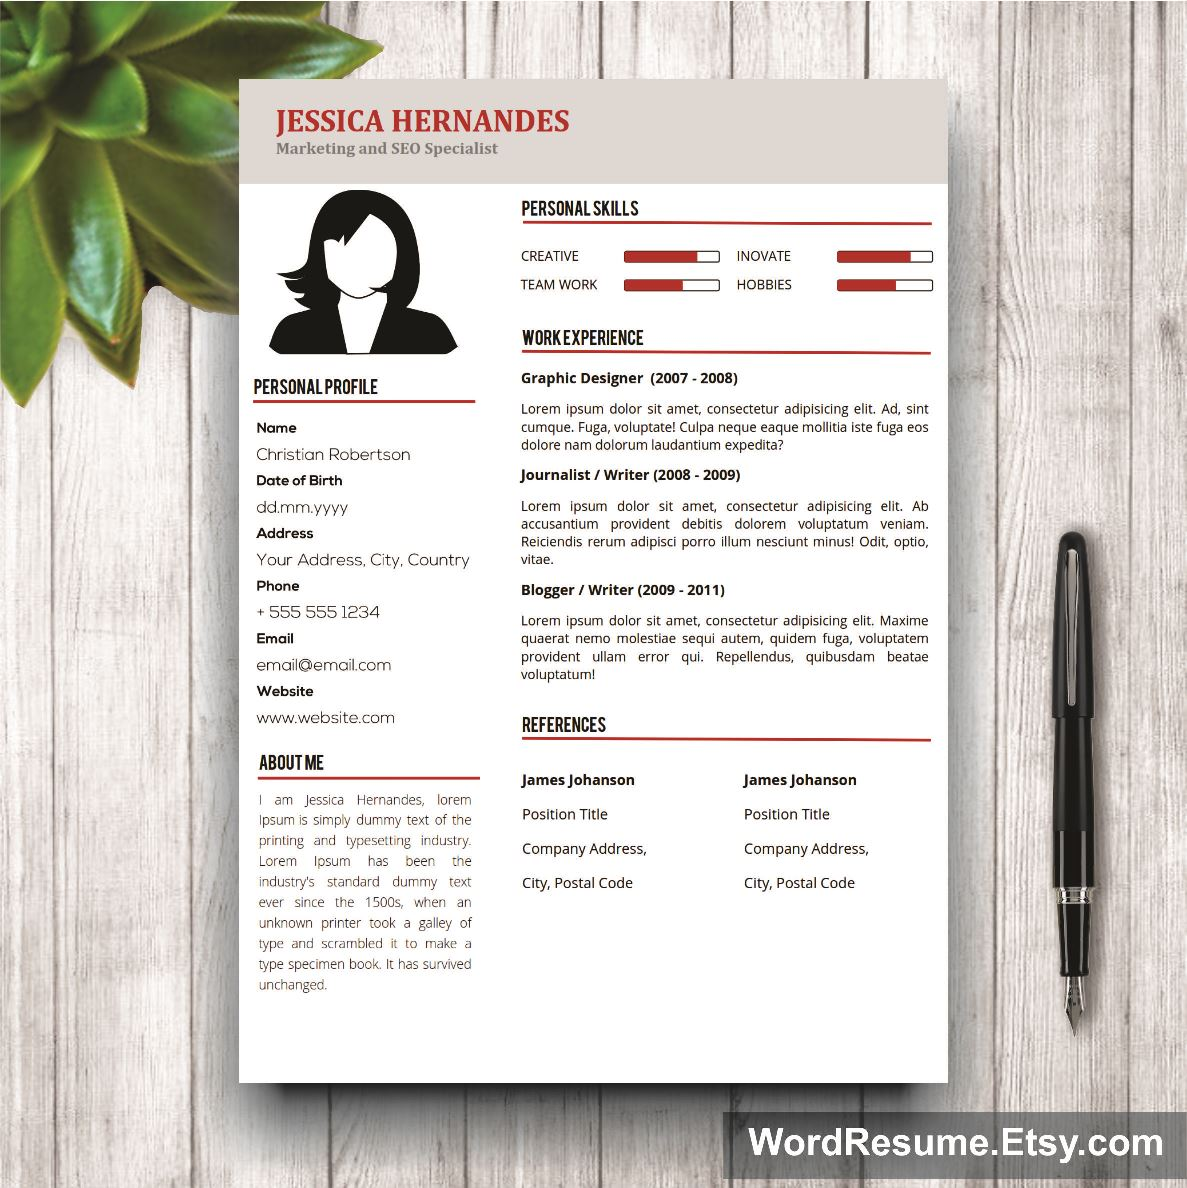 Download This File For A Professionally Designed And Easy To Customize 2  PAGE Resume And Matching Cover Letter (you Receive 3 Pages!)